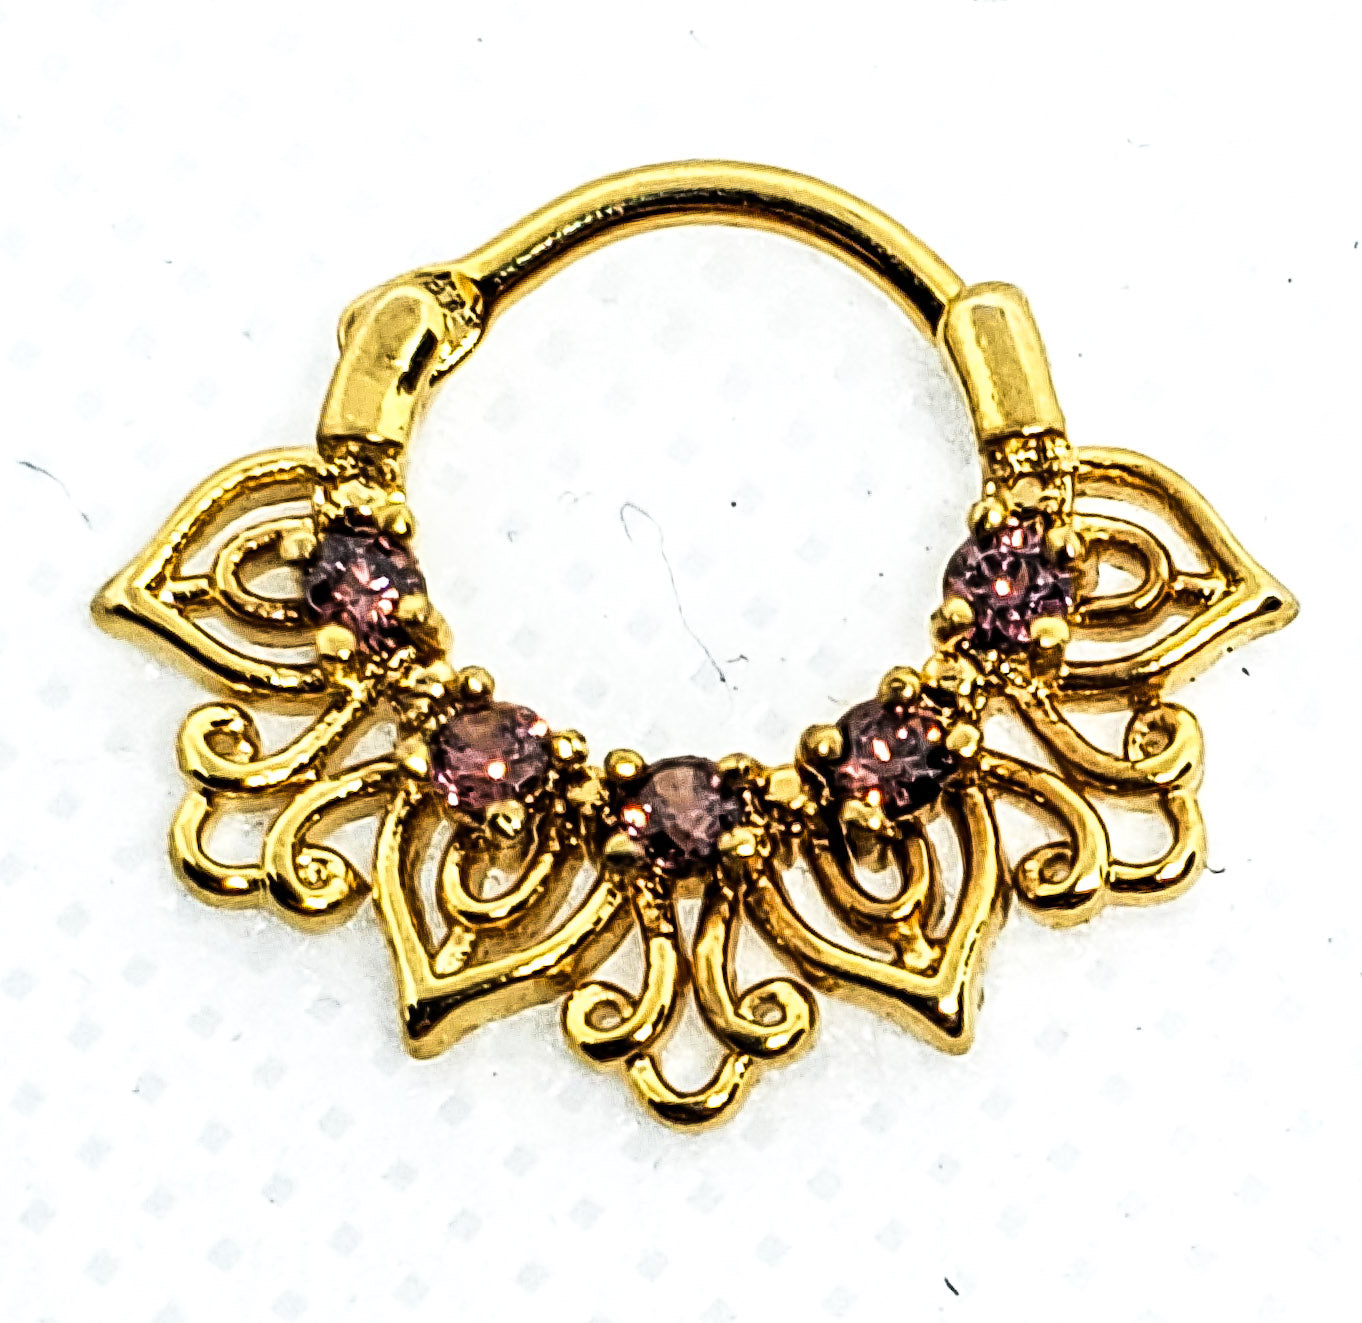 14K Gold Plated Septum Clicker With Amethyst